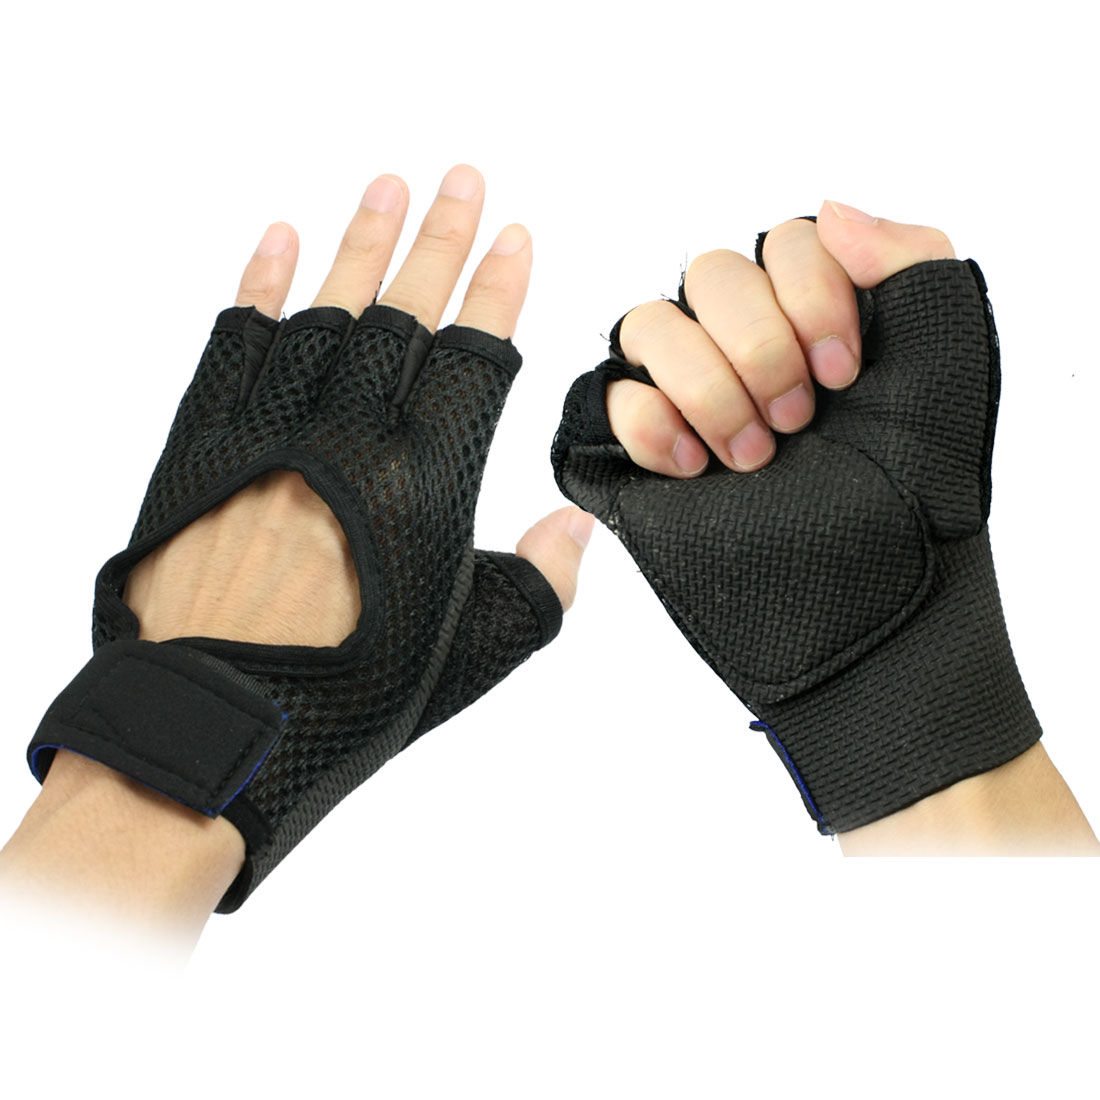 Adult Sports Mountain Bike Cycling Half Finger Glove Pair Black